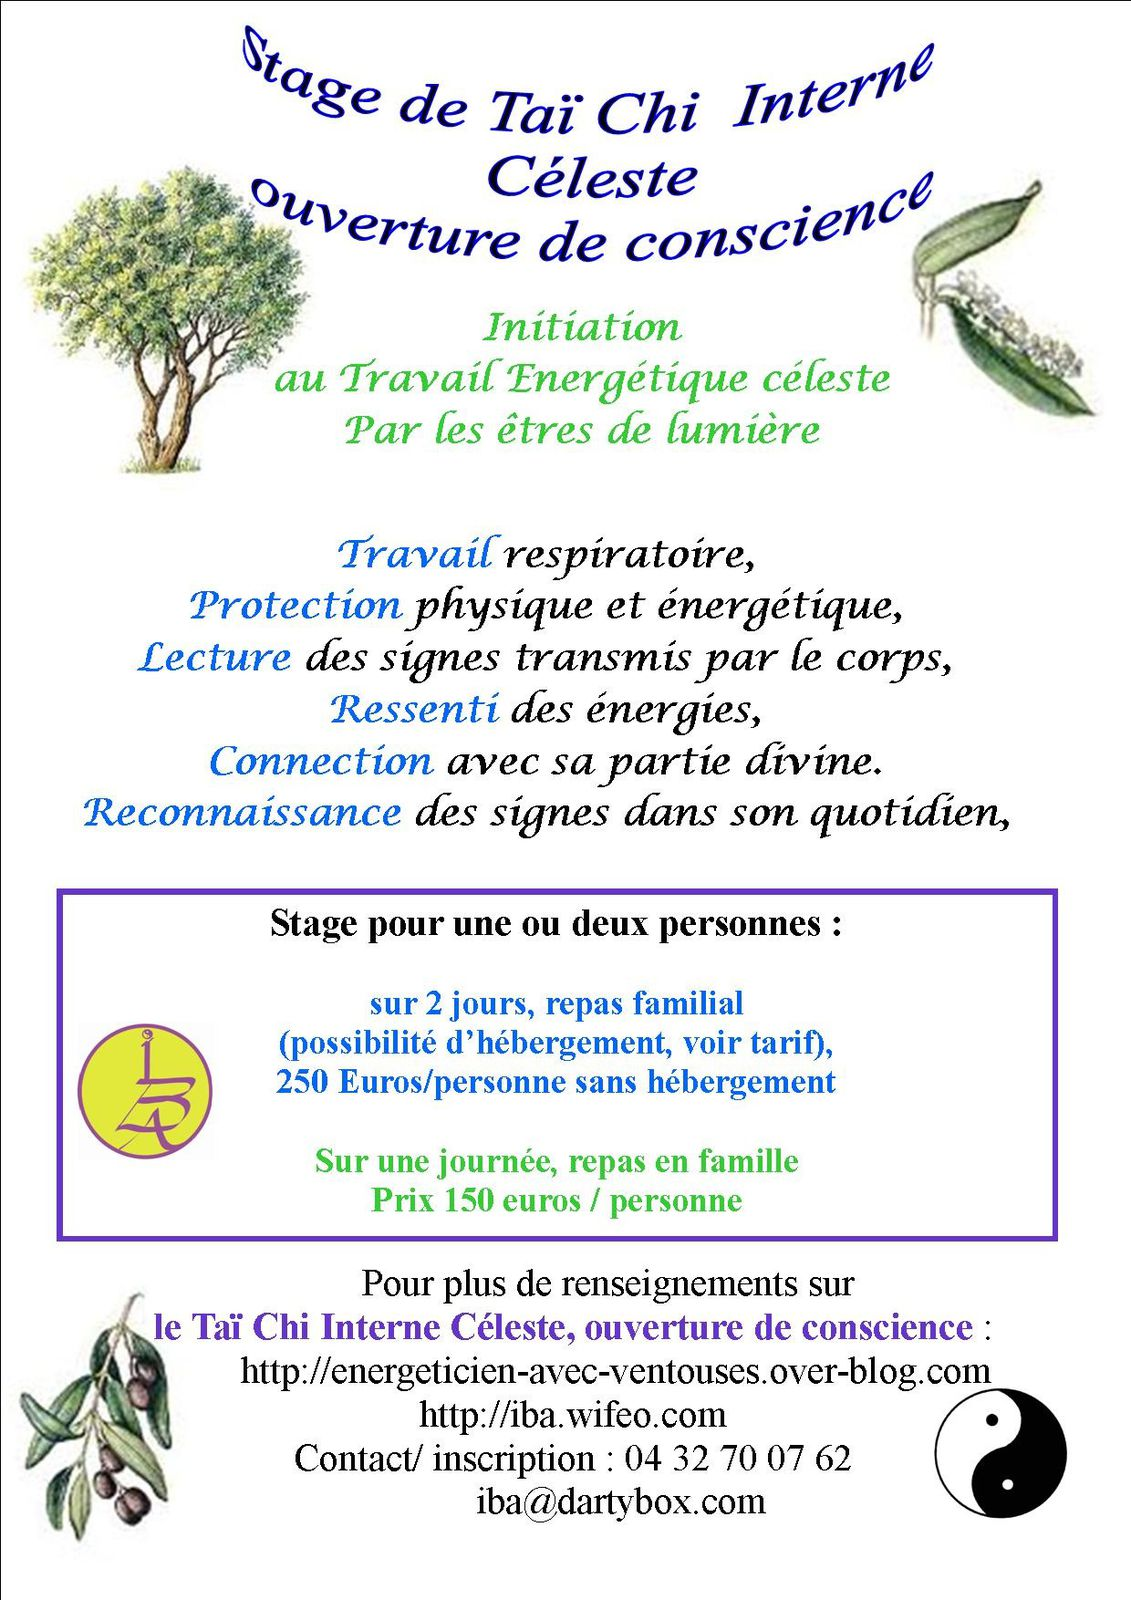 Initiation stage Tai chi interne céleste